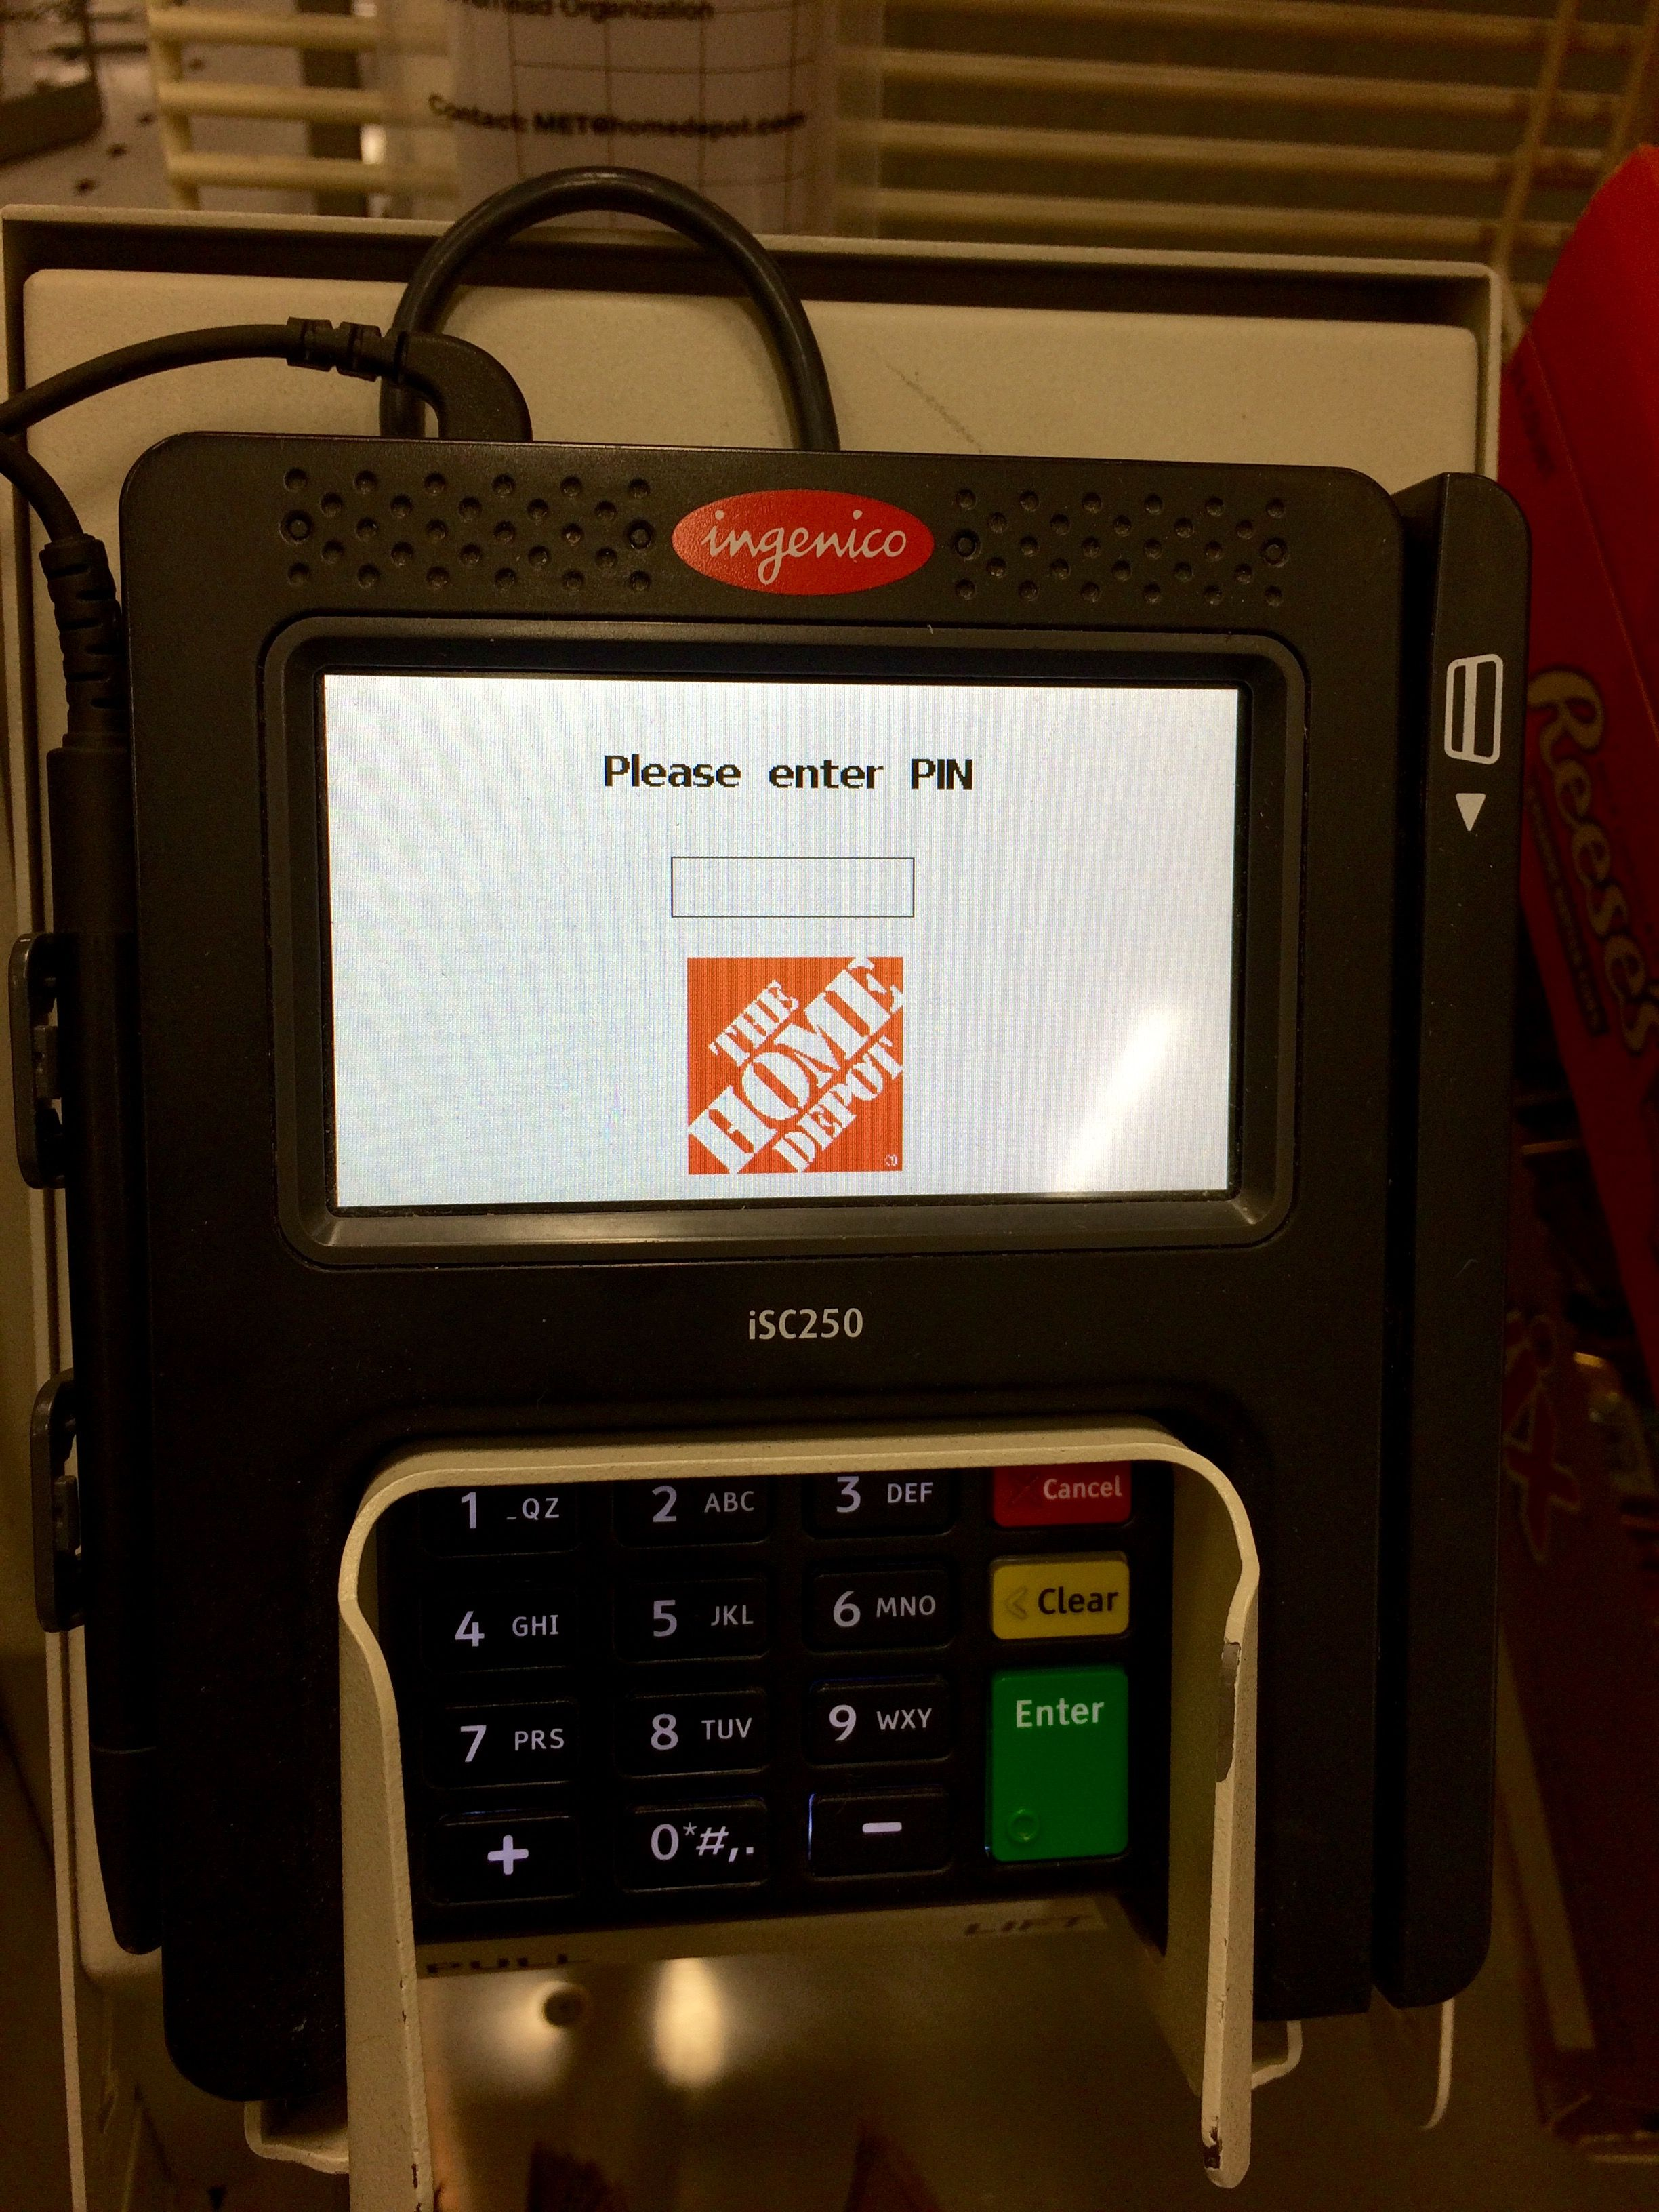 Spotted Ingenico Group's iSC250 at Home Depot! Check out